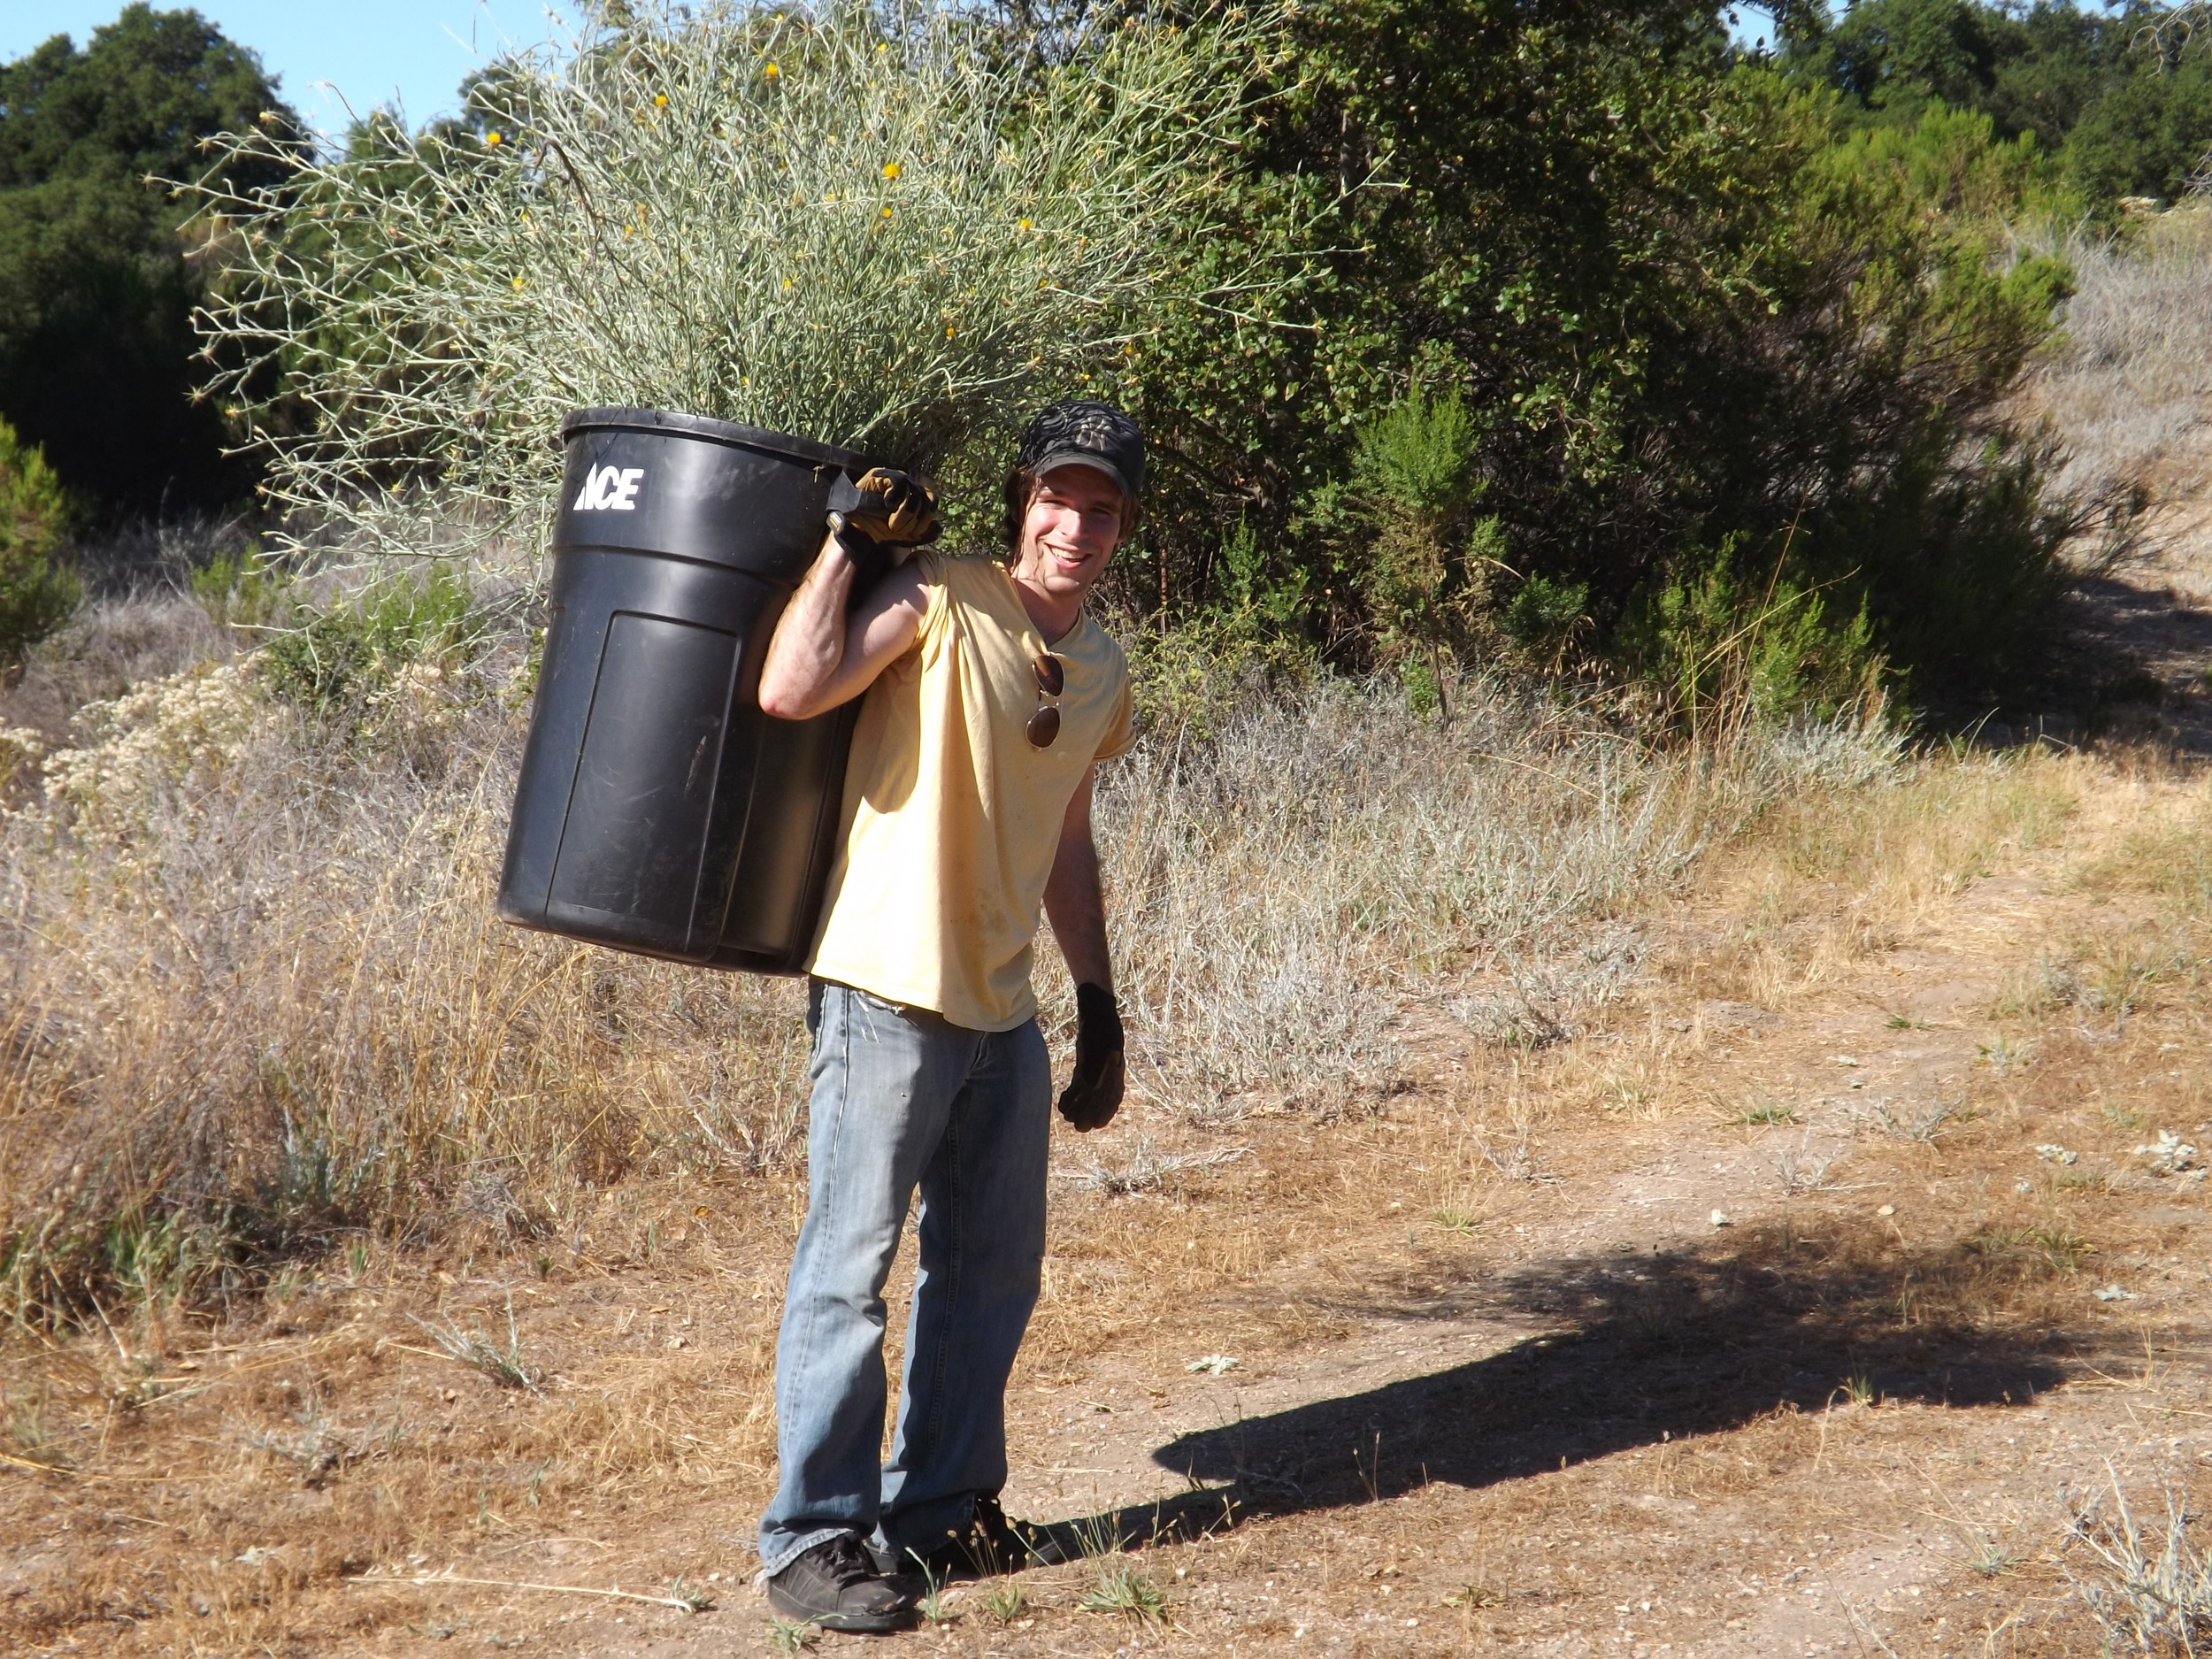 IAN DIBBLE taking a just-emptied trash can back down the hill for more weed pulling of the invasive Yellow Starthistle. (Photo: Leslie Bridger, 2012)